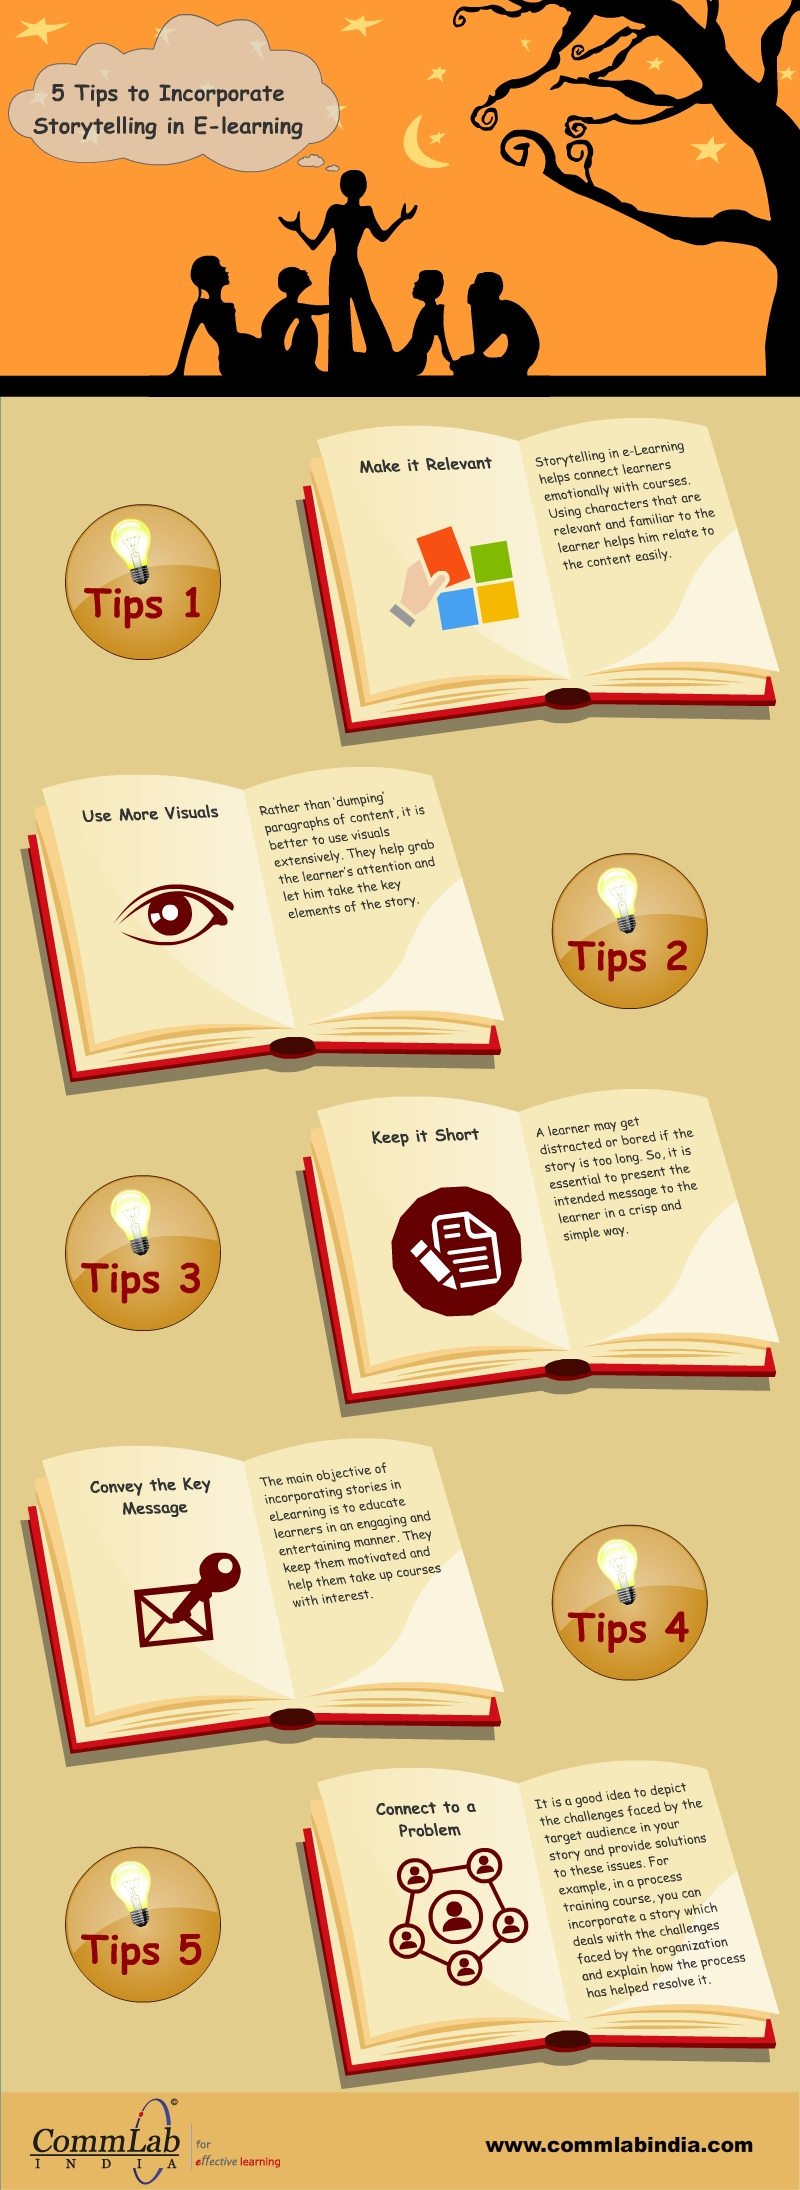 5 Tips to Incorporate Story Telling in E-Learning – An Infographic